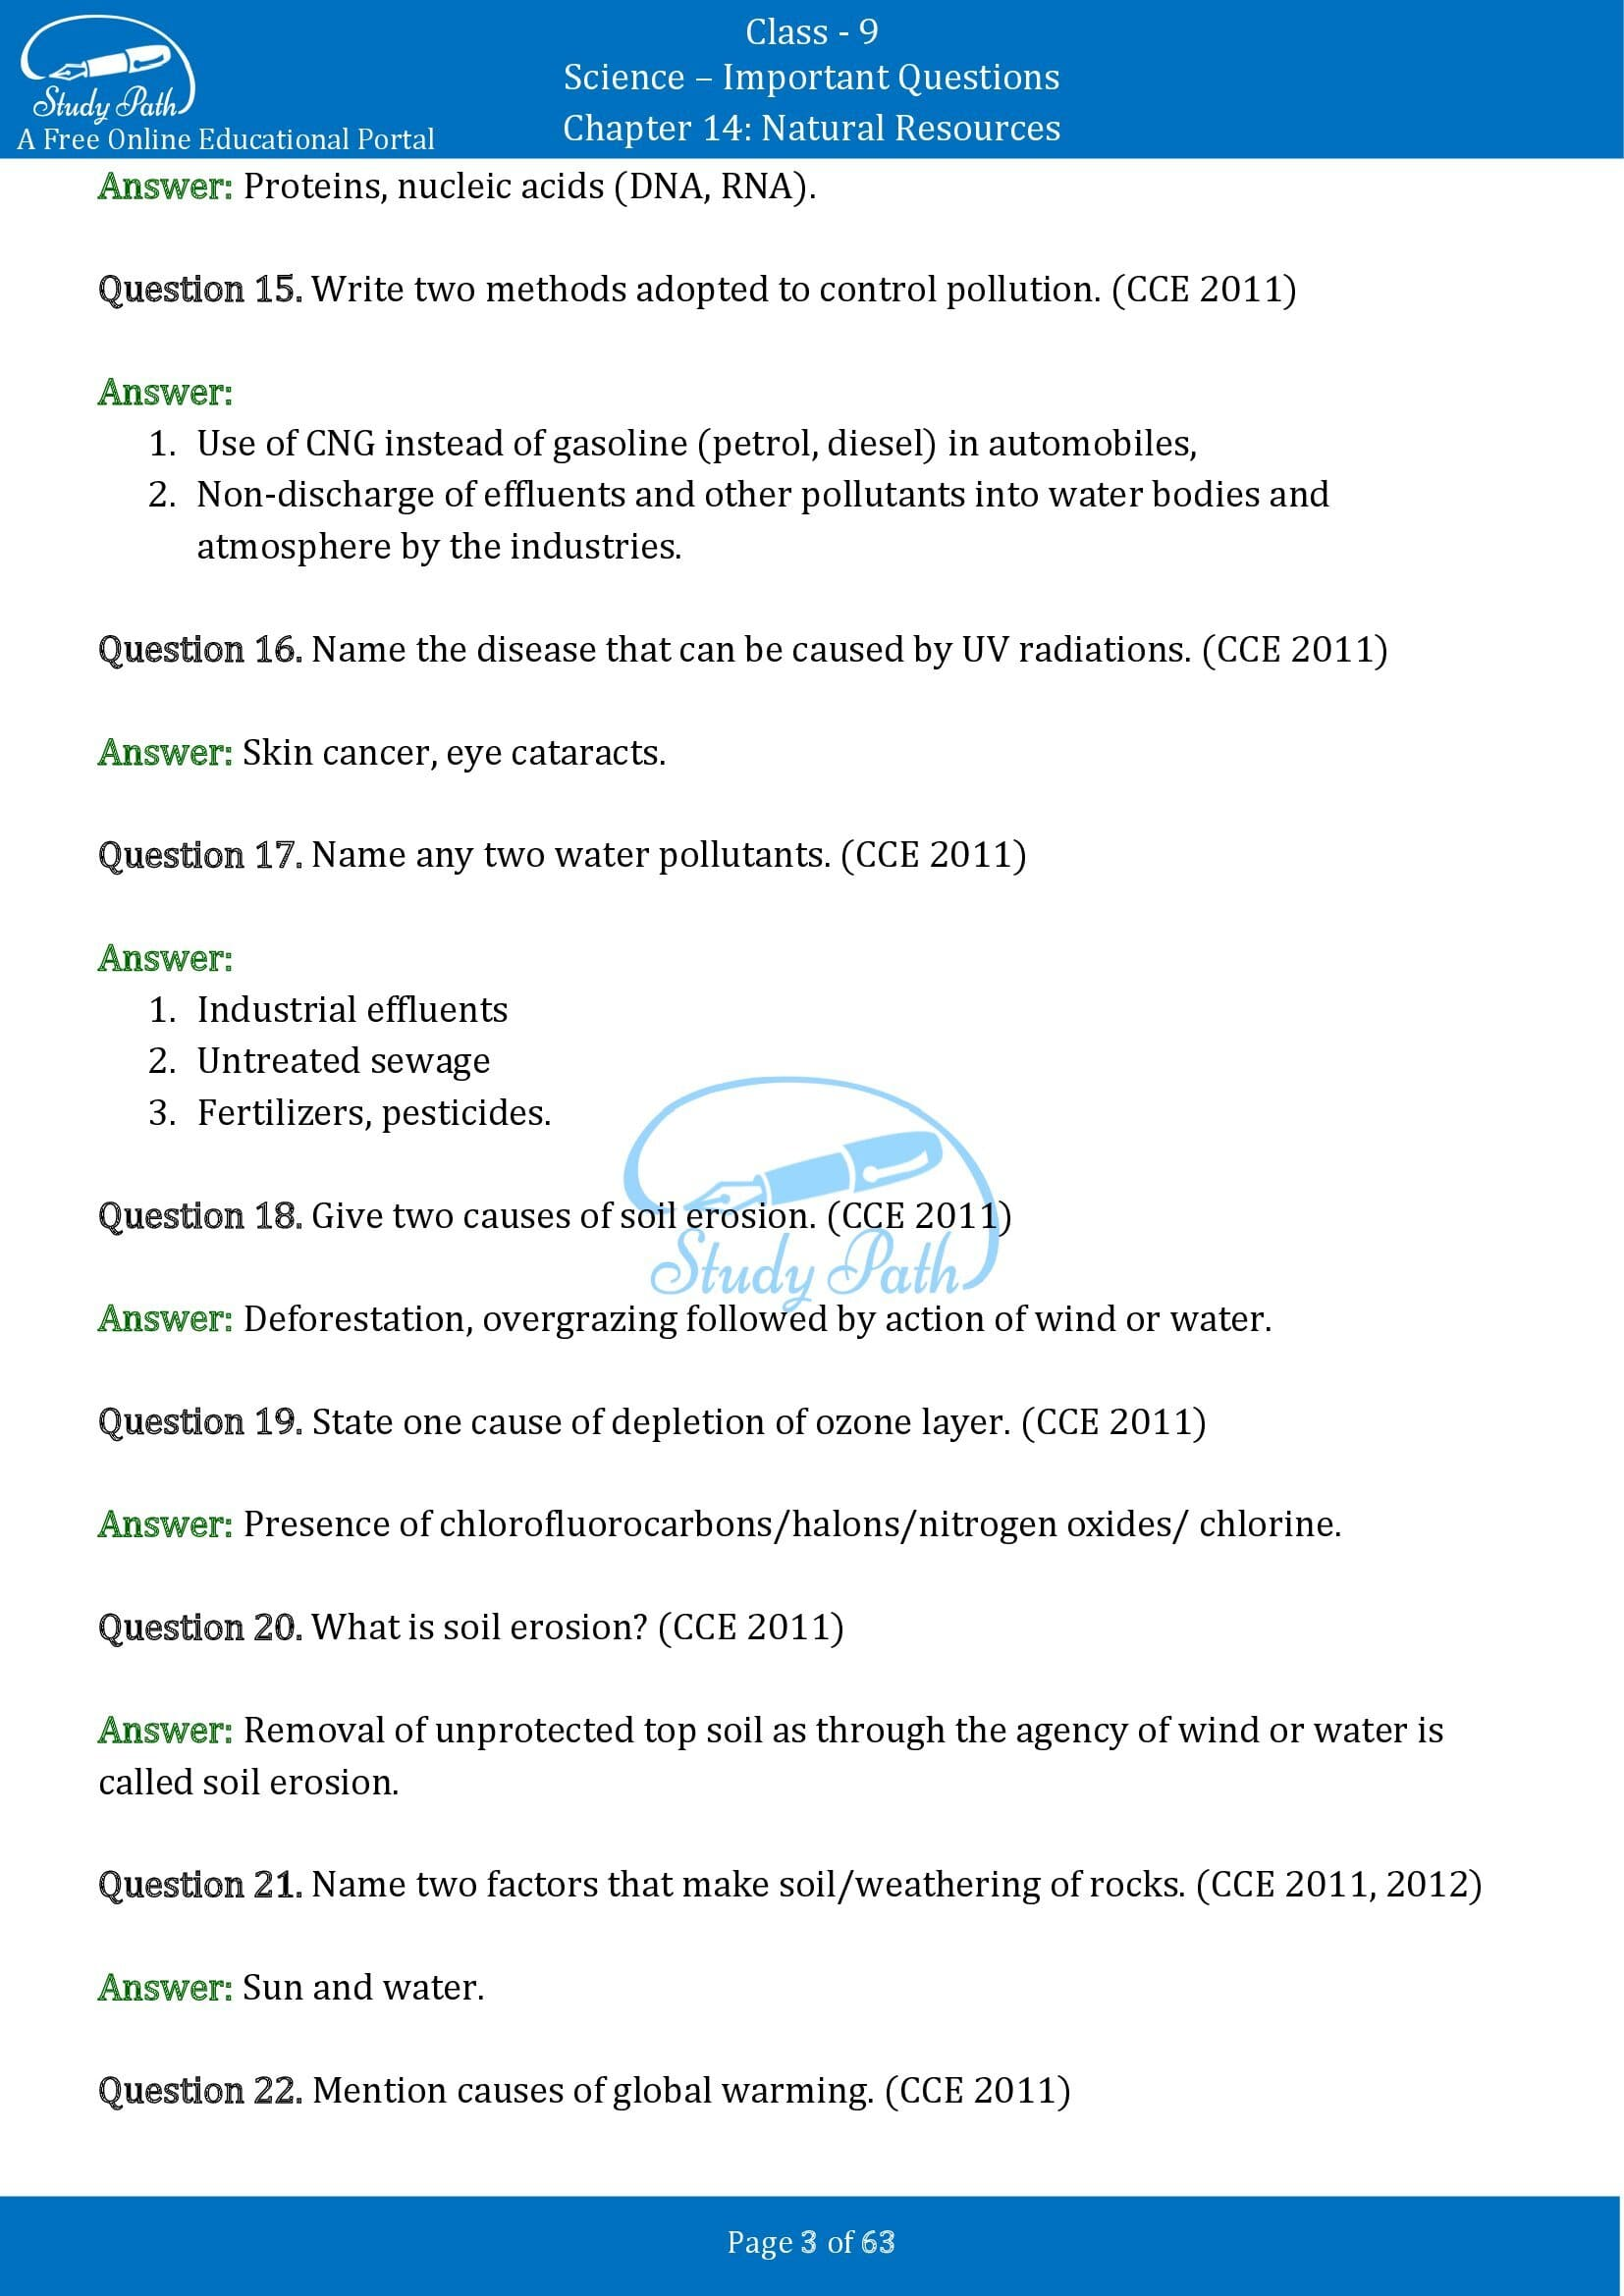 Important Questions for Class 9 Science Chapter 14 Natural Resources 00003